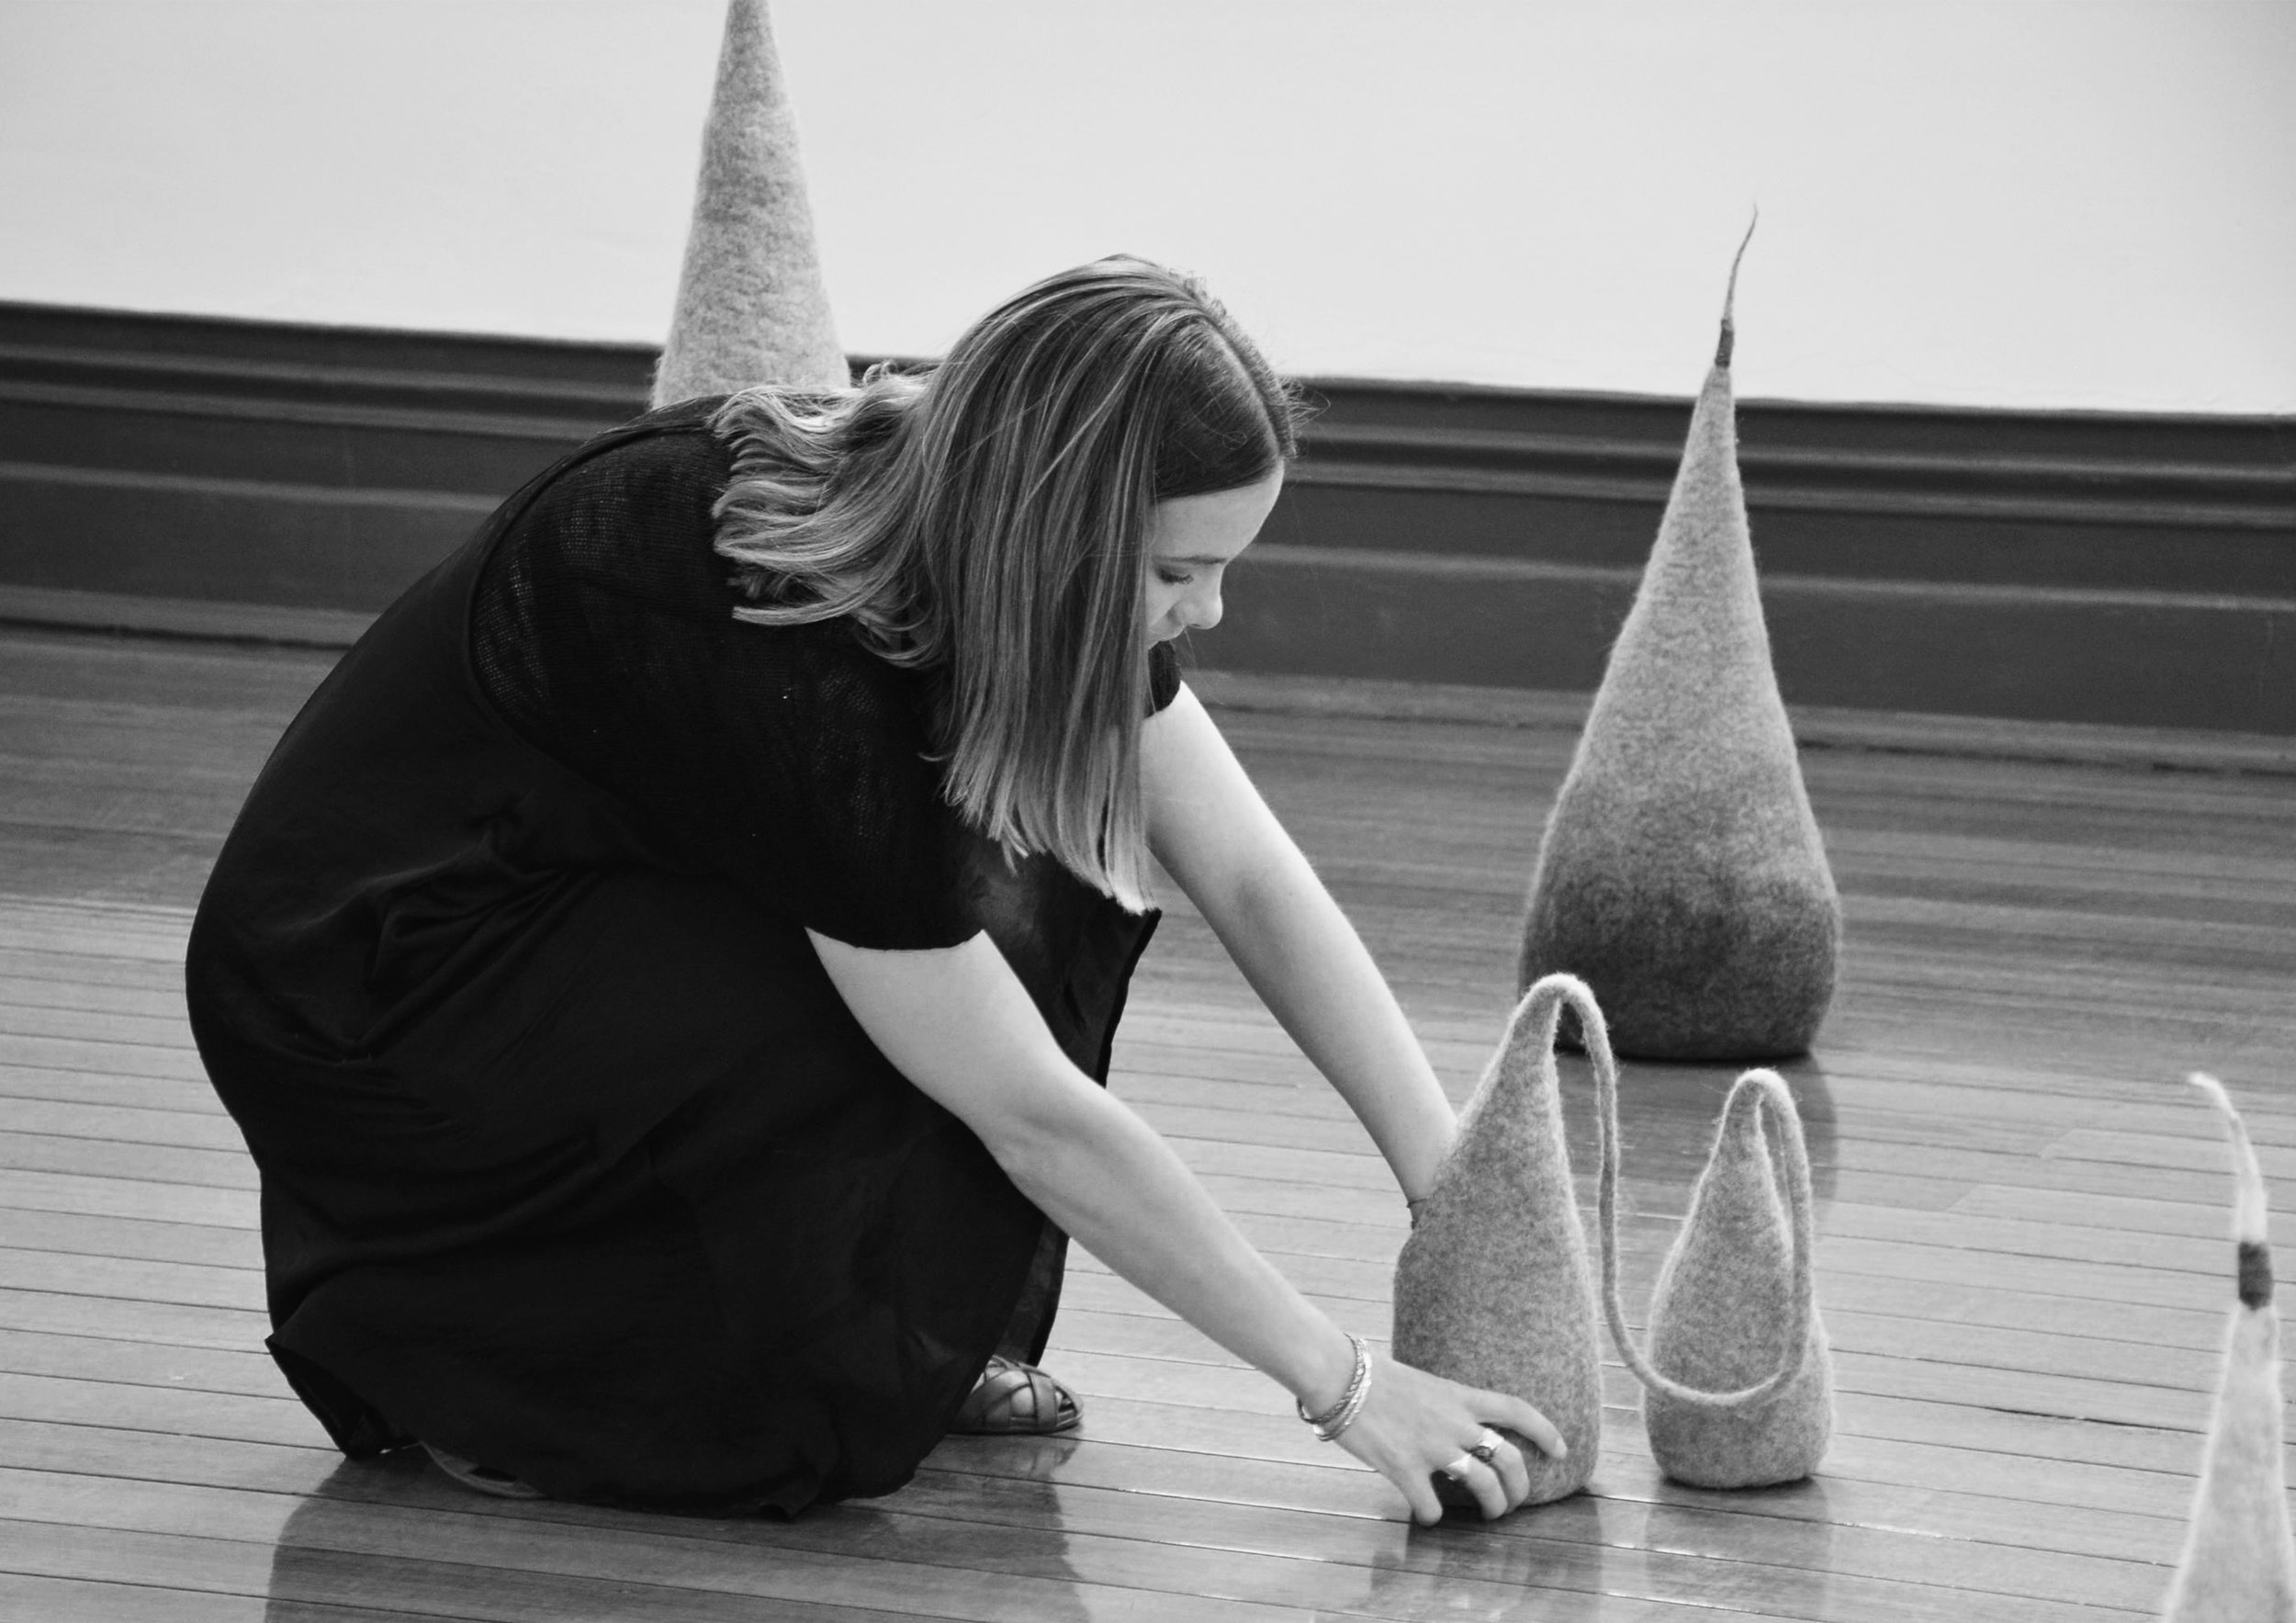 """"""" P U S H T H E M E D I U M """"   Push the Medium - Narrandera Art Centre NSW, February 2018. Featuring felt installation 'Parasites'.  Curated by Alex Wisser, Photographer and Curator of the Cementa Arts Festiva."""